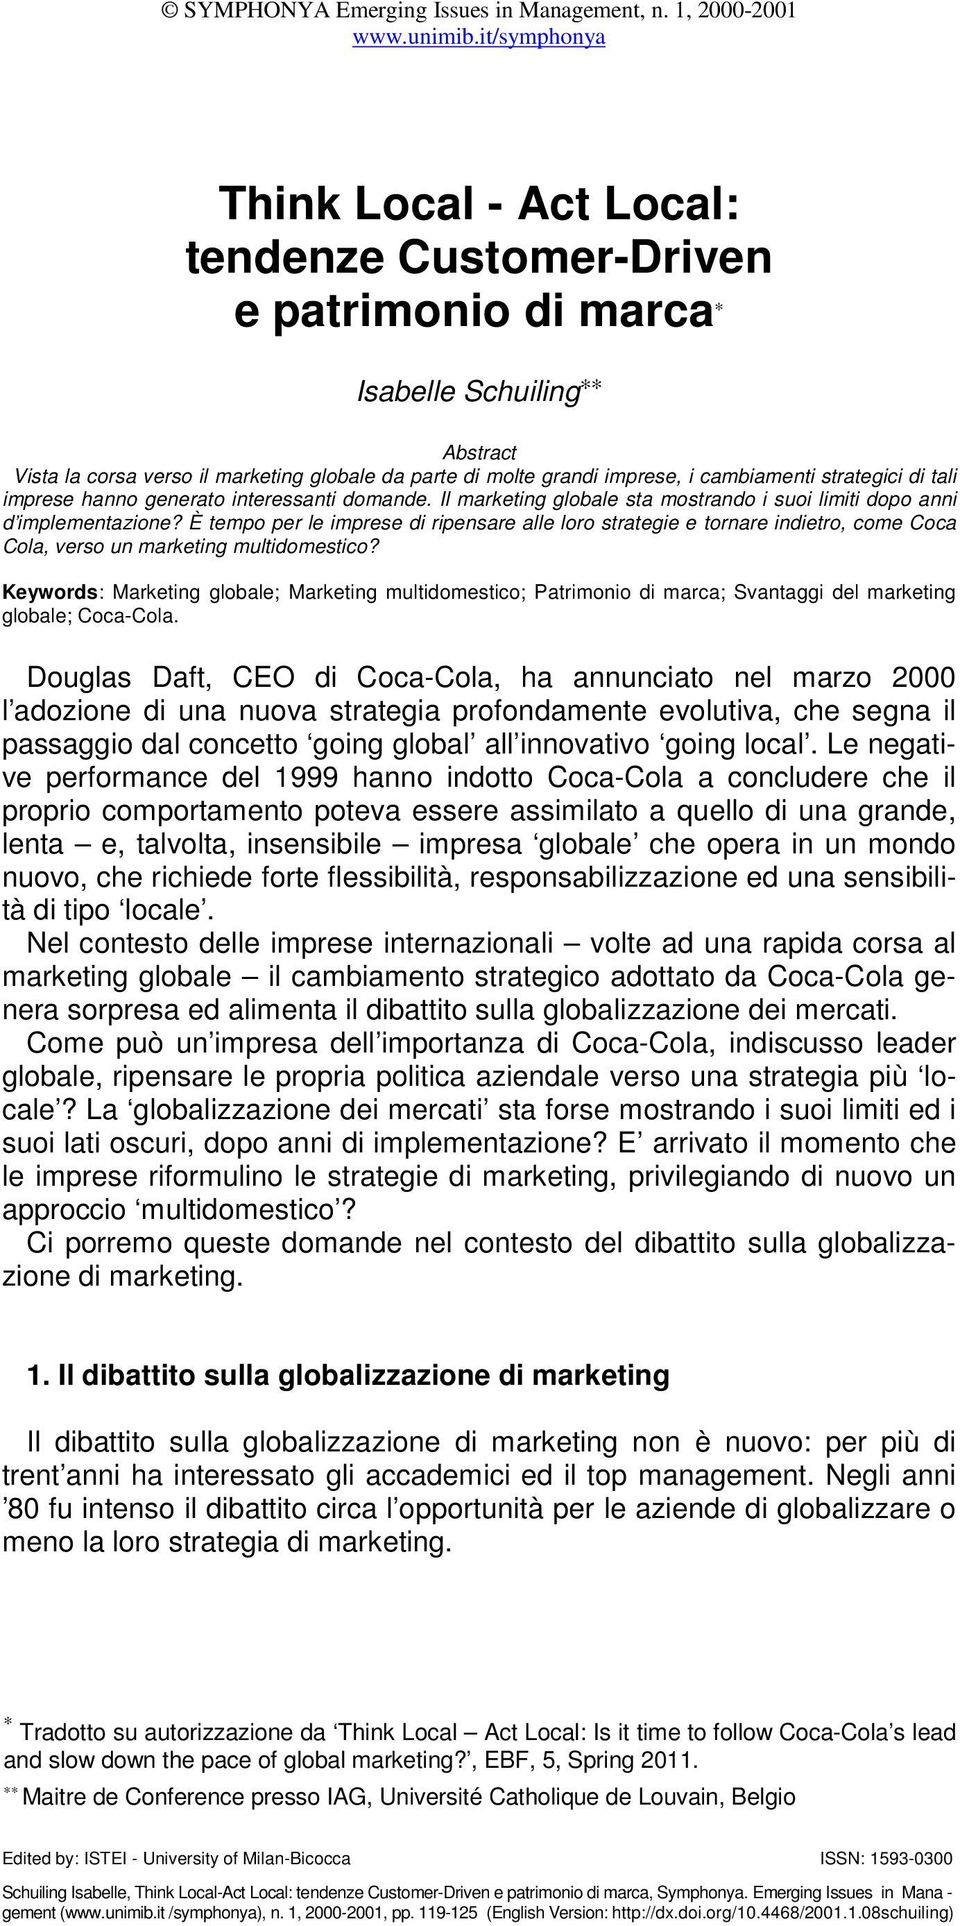 È tempo per le imprese di ripensare alle loro strategie e tornare indietro, come Coca Cola, verso un marketing multidomestico?